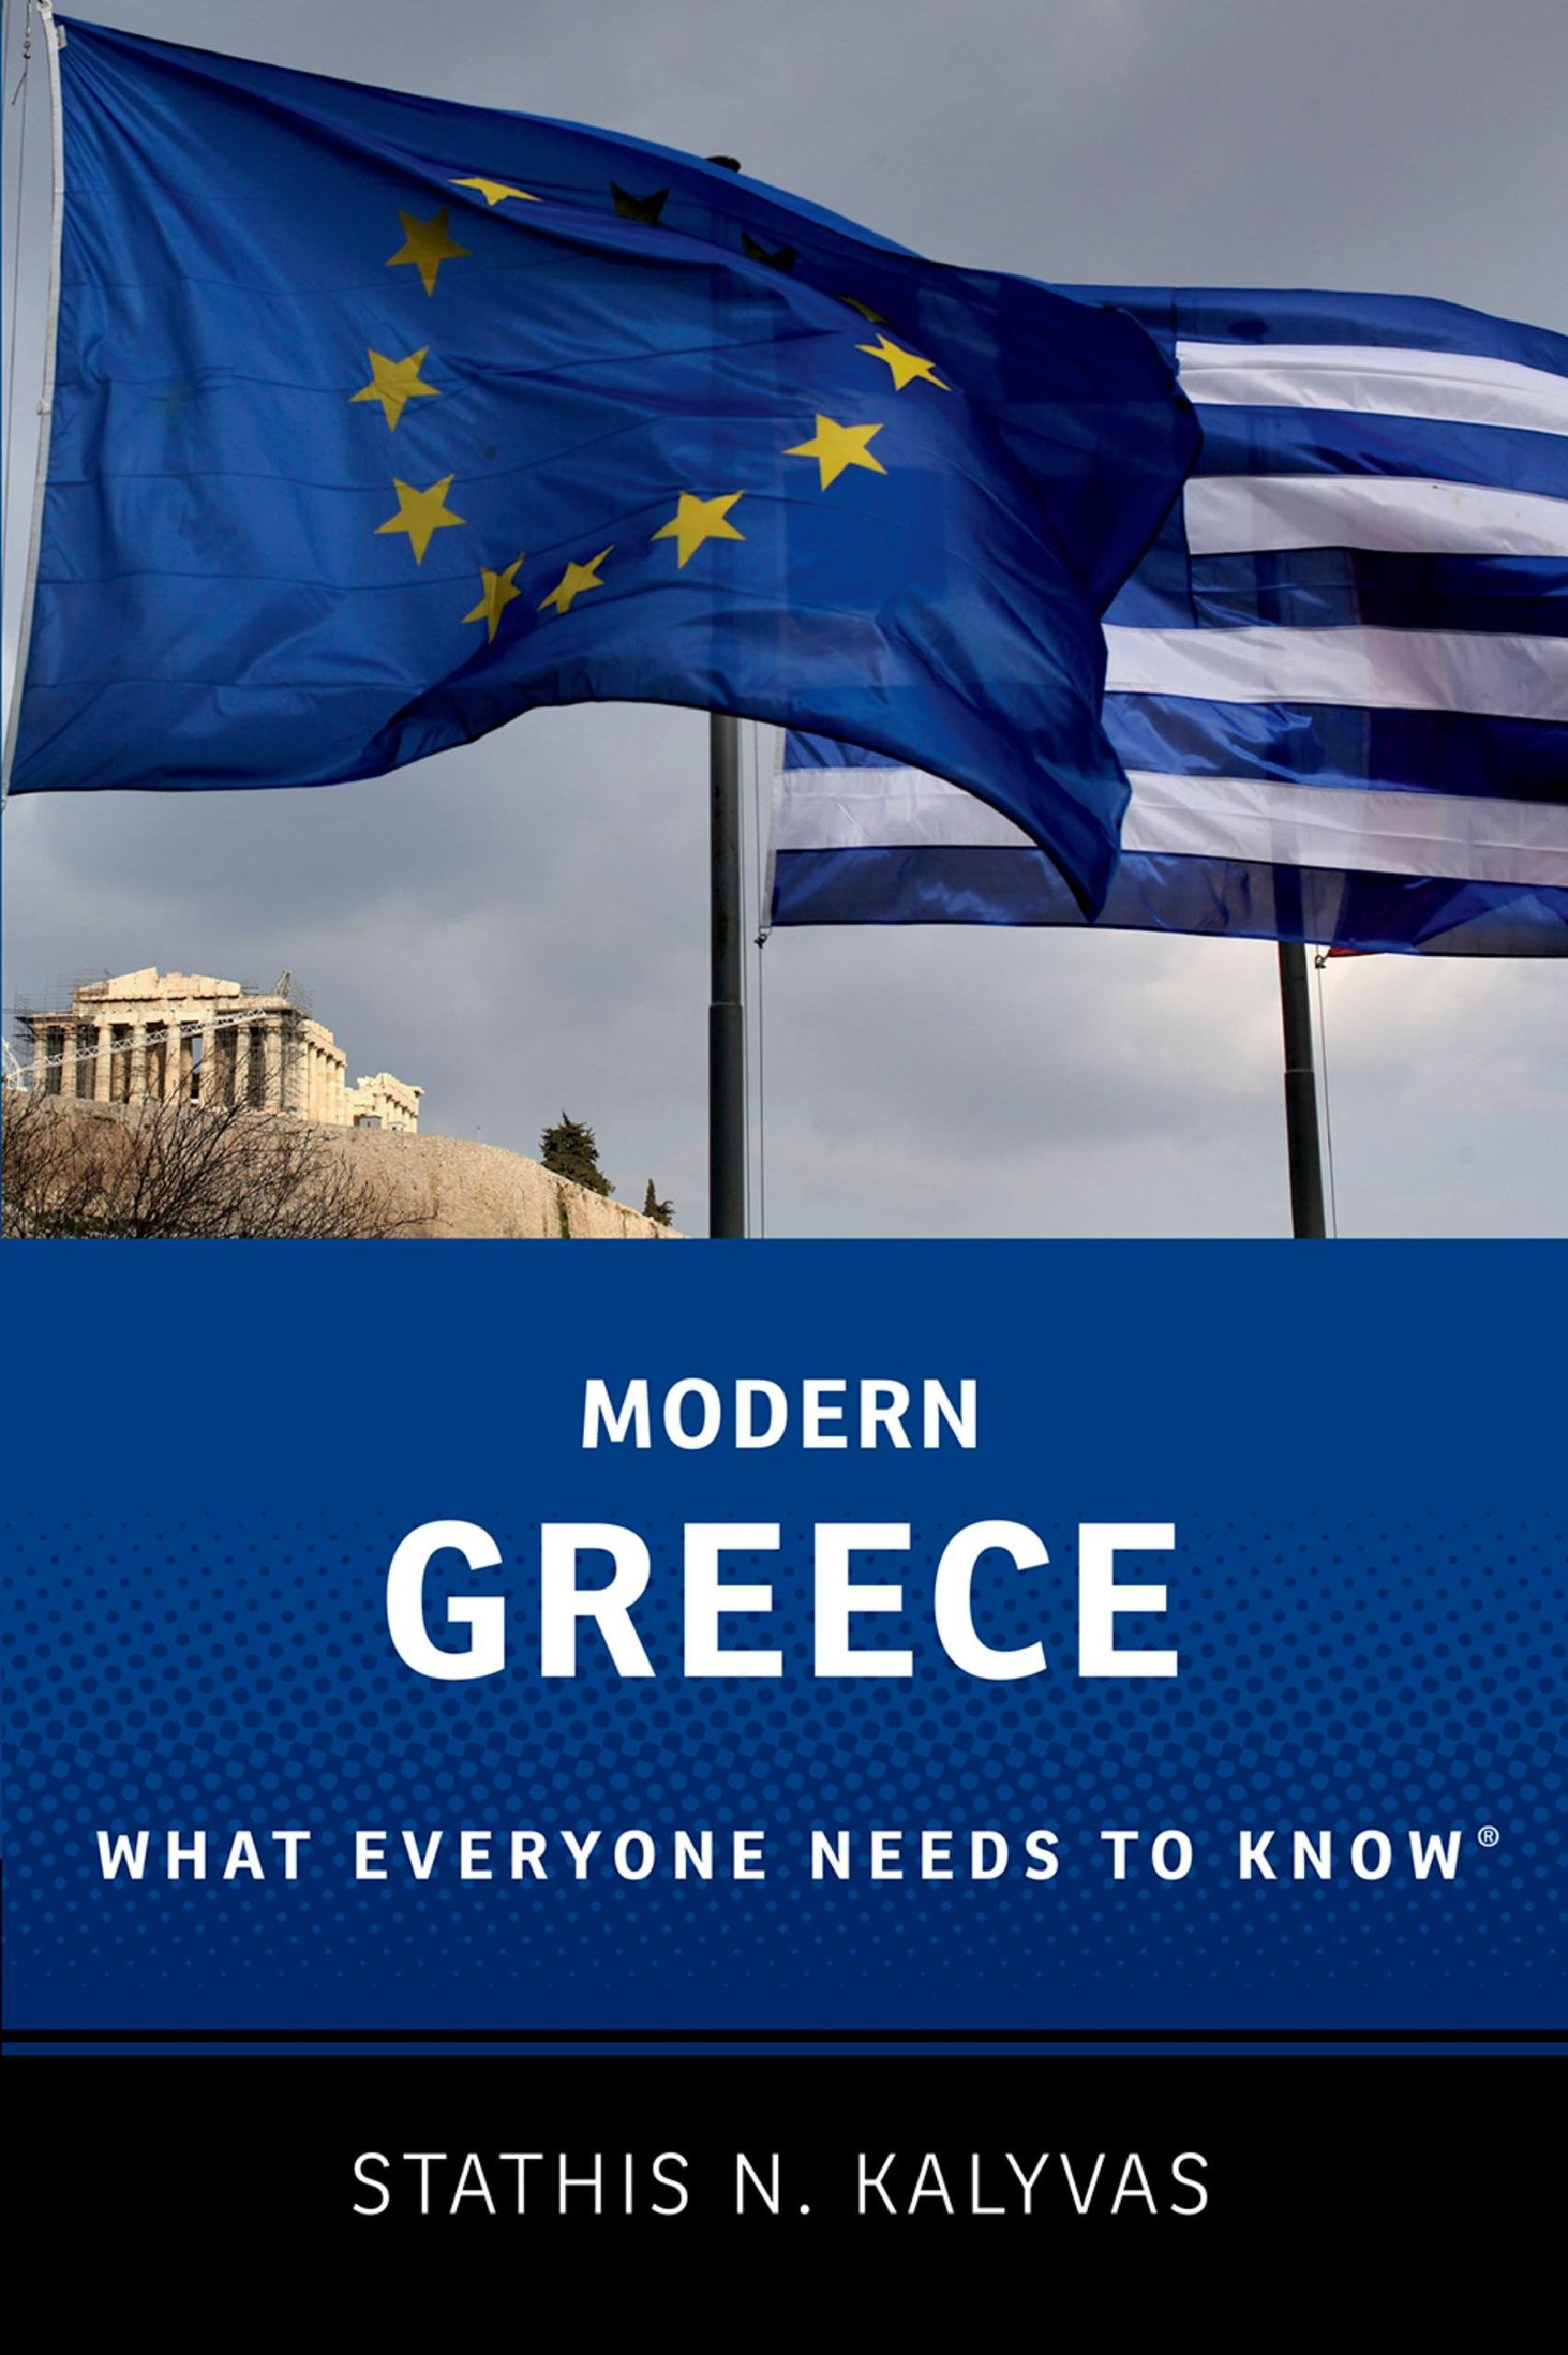 Image OfModern Greece: What Everyone Needs To Know® (English Edition)